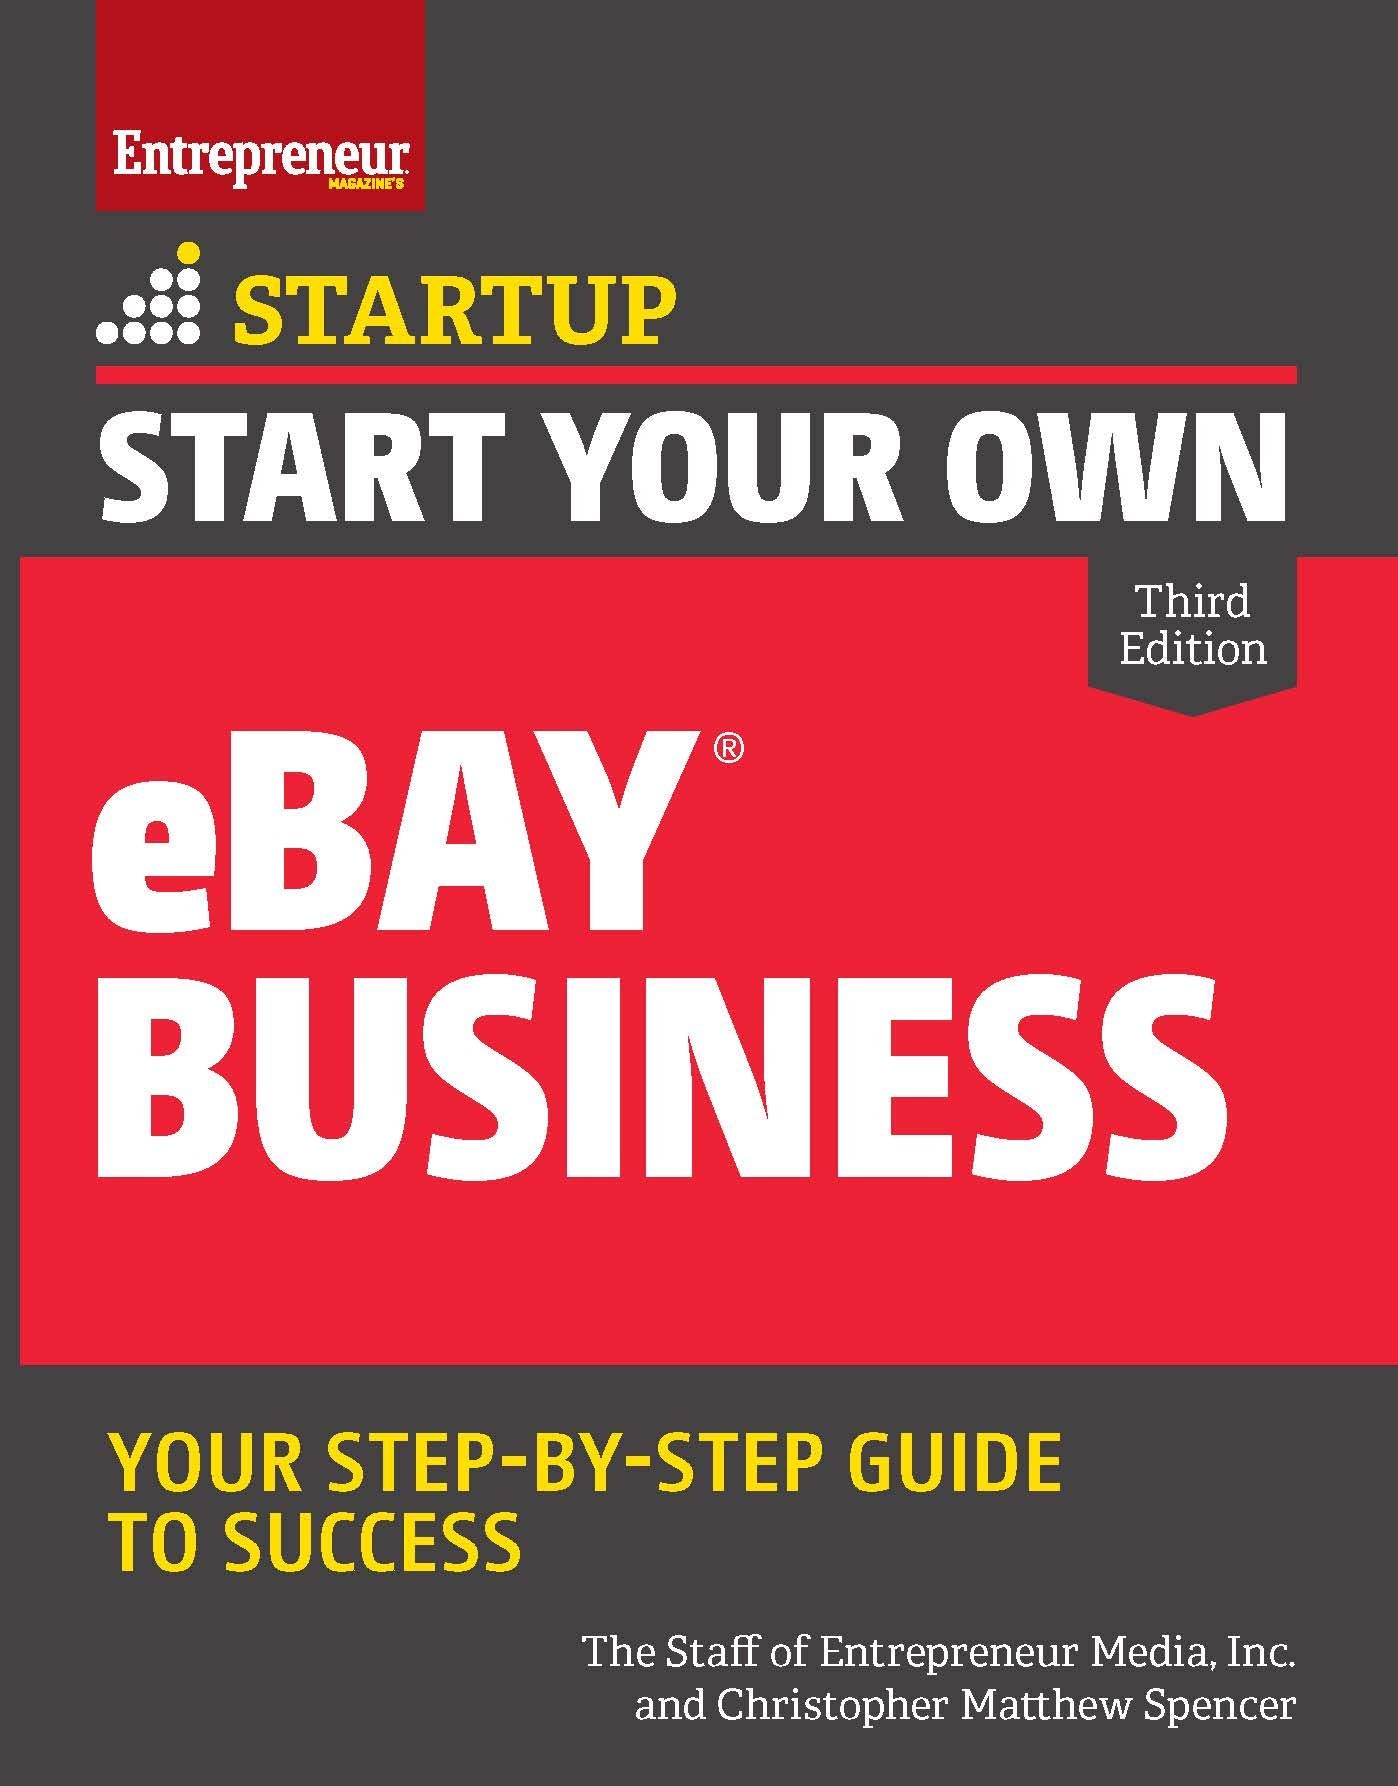 Start Your Own Ebay Business Startup Spencer Christopher Matthew The Staff Of Entrepreneur Media Inc 9781599186702 Amazon Com Books